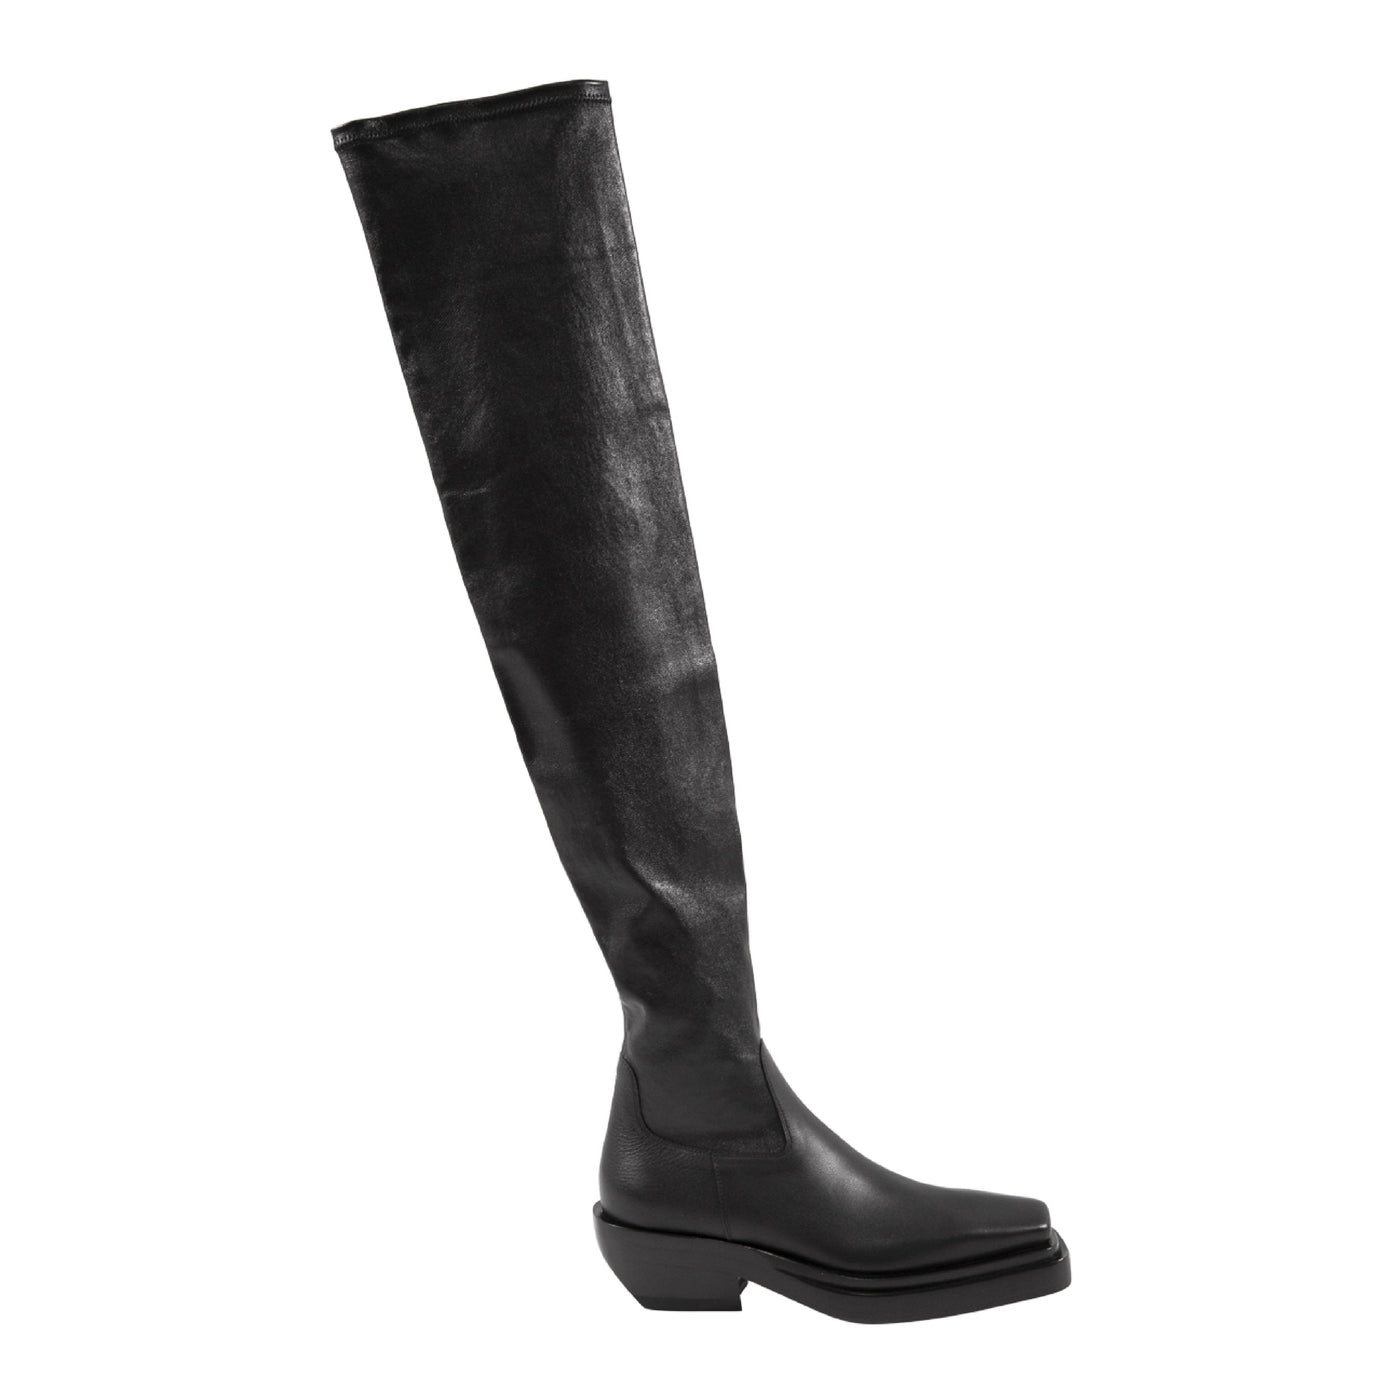 Load image into Gallery viewer, BOTTEGA VENETA SQUARE-TOE THIGH-HIGH BOOTS BLACK